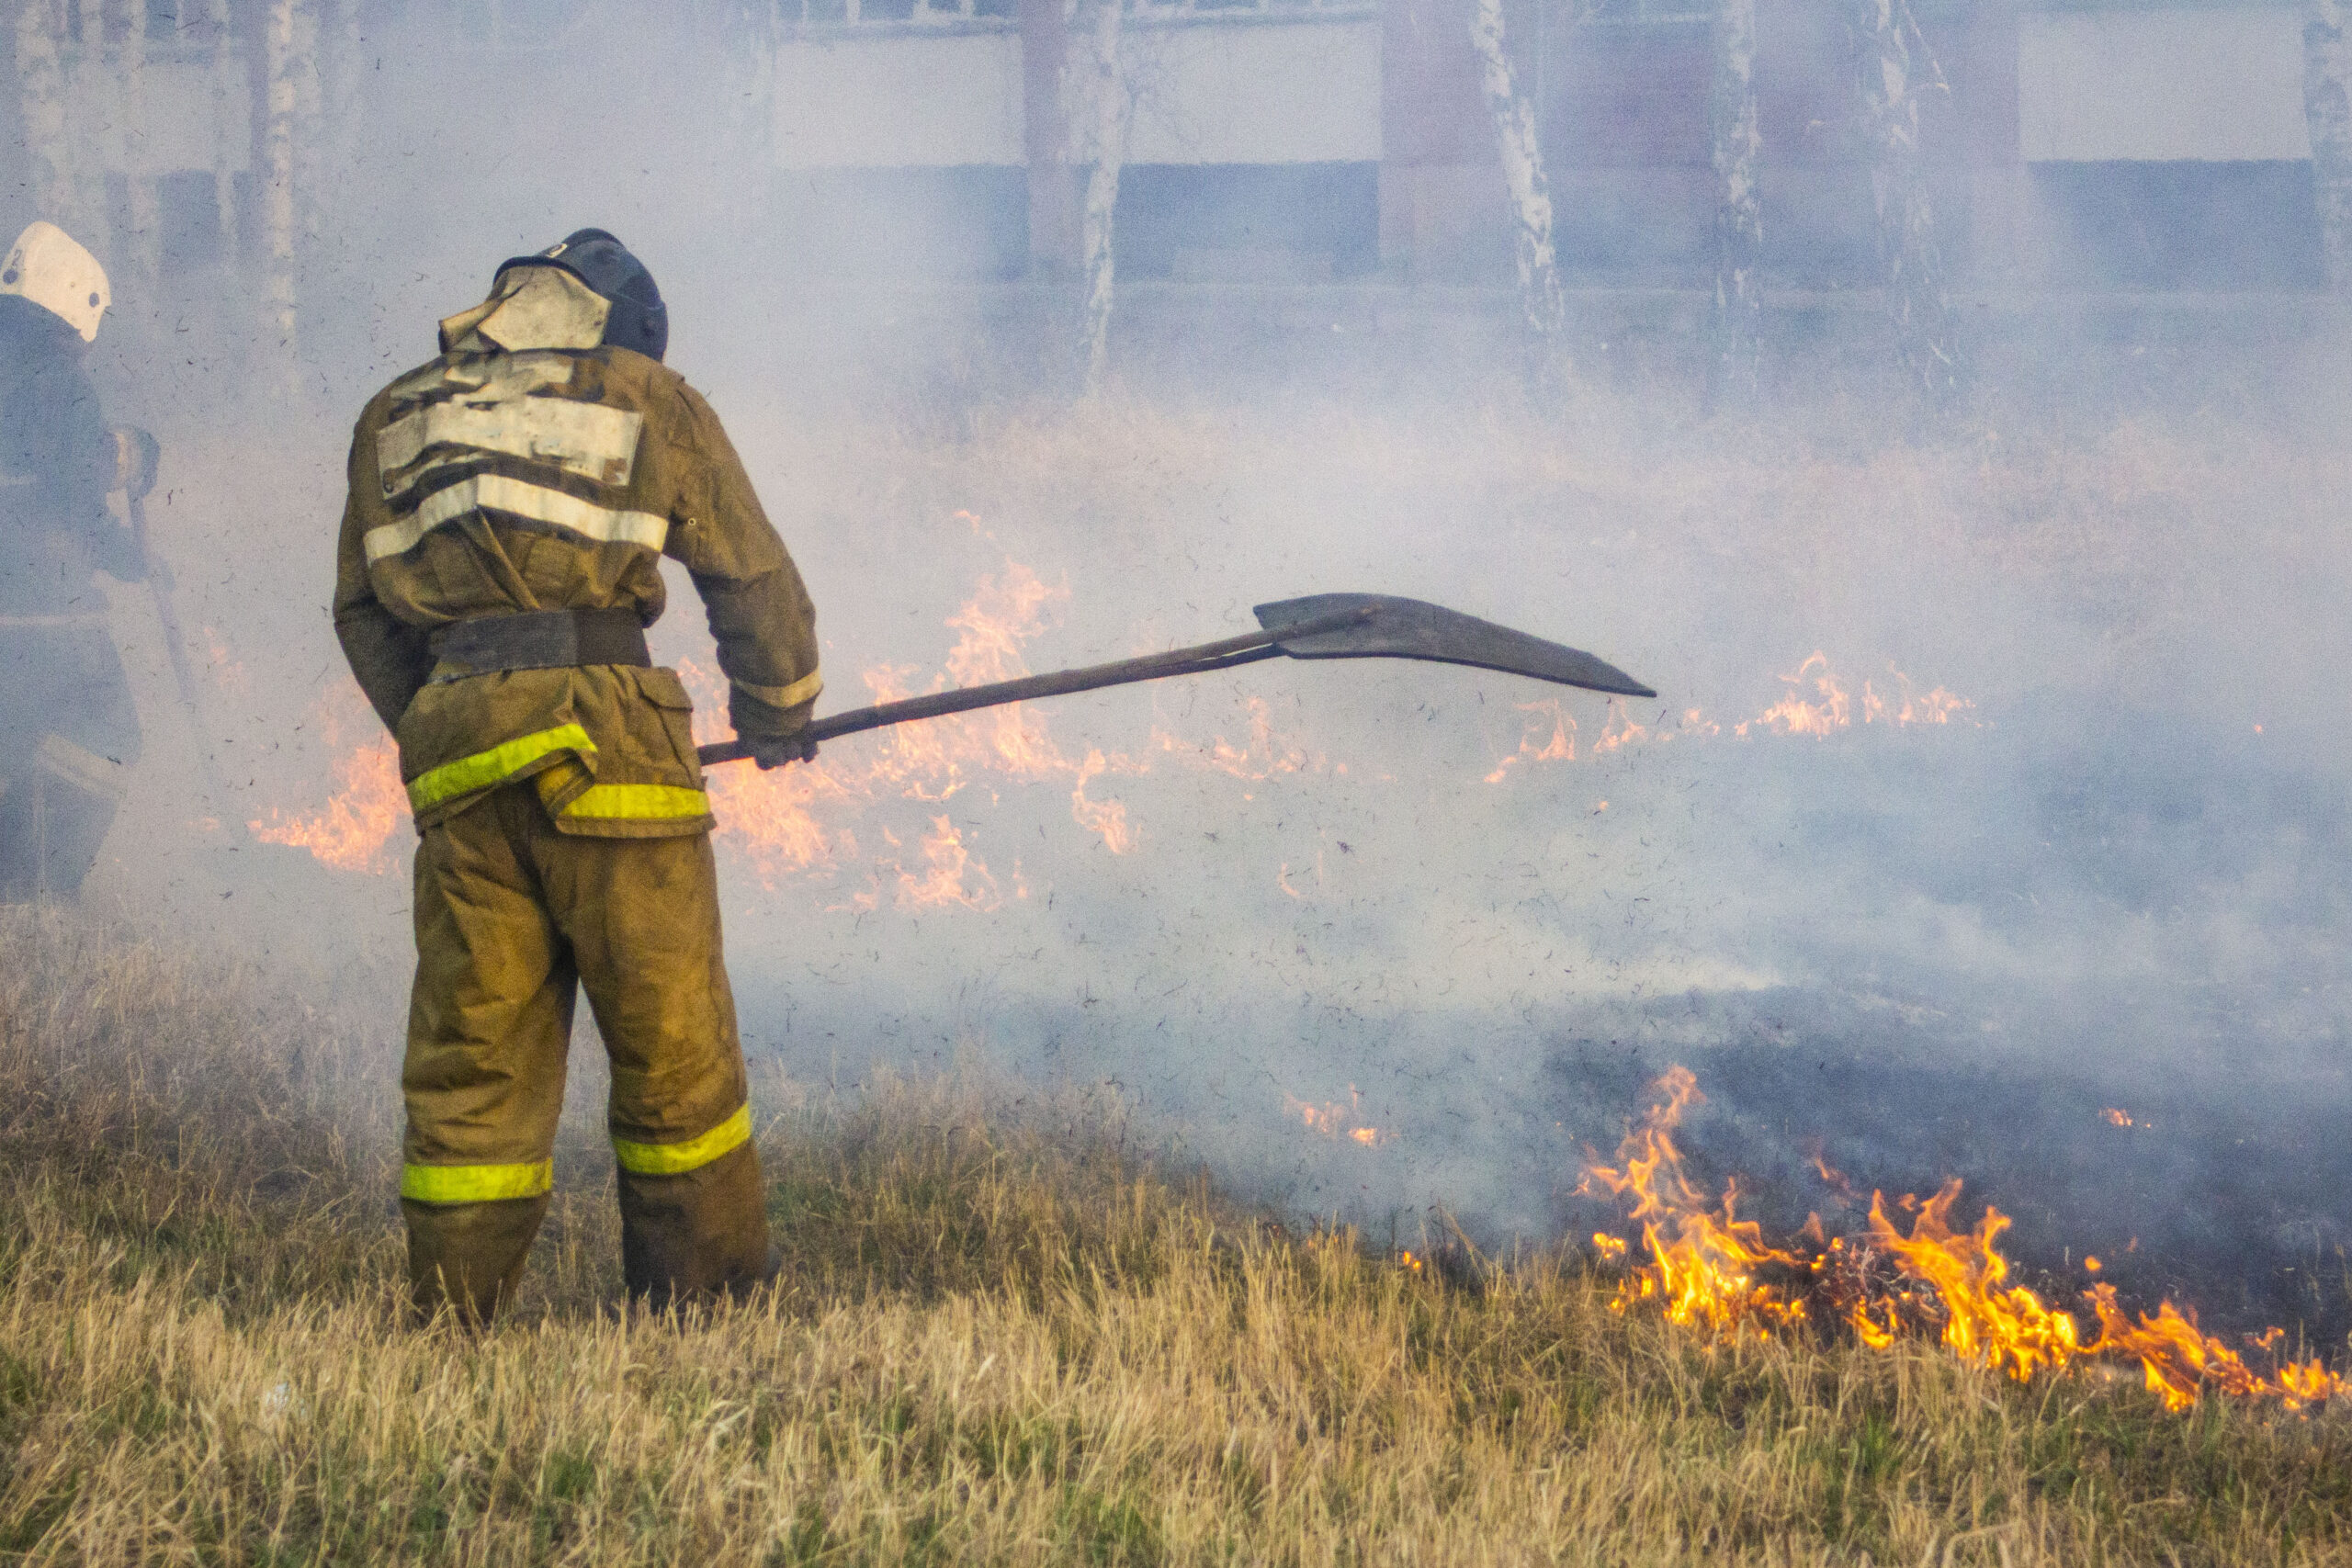 Raging forest spring fires. Burning dry grass, reed along lake. Grass is burning in meadow. Ecological catastrophy. Fire and smoke destroy all life. Firefighters extinguish Big fire. Lot of smok